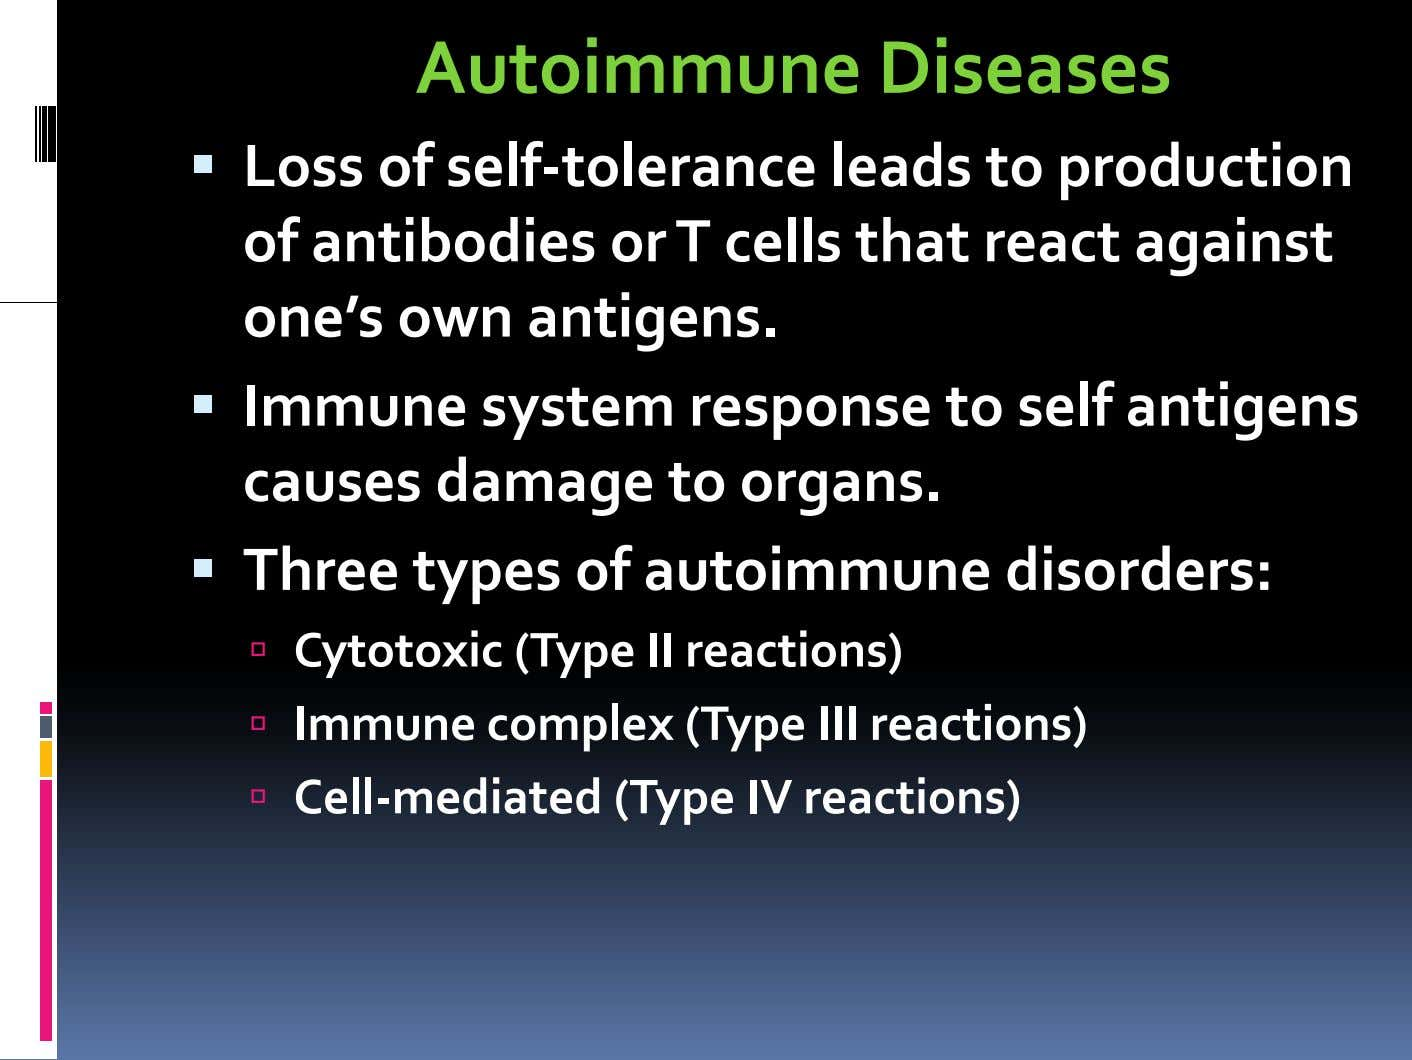 Autoimmune Diseases L oss of self ‐ tol erance l eads to prod ucti on